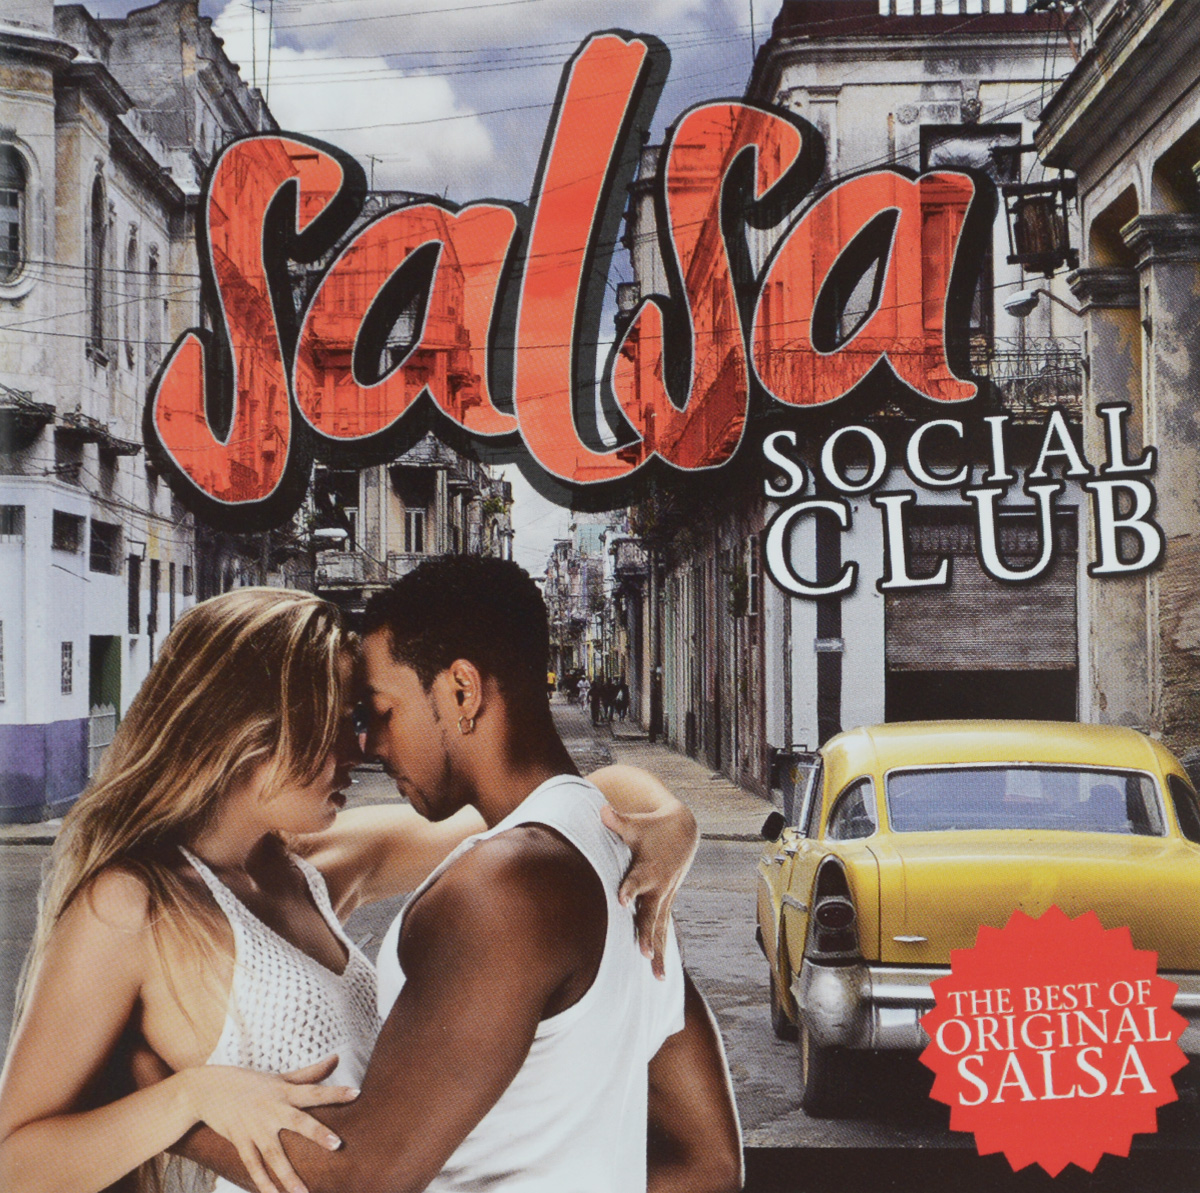 цена Salsa Social Club (2 CD) онлайн в 2017 году